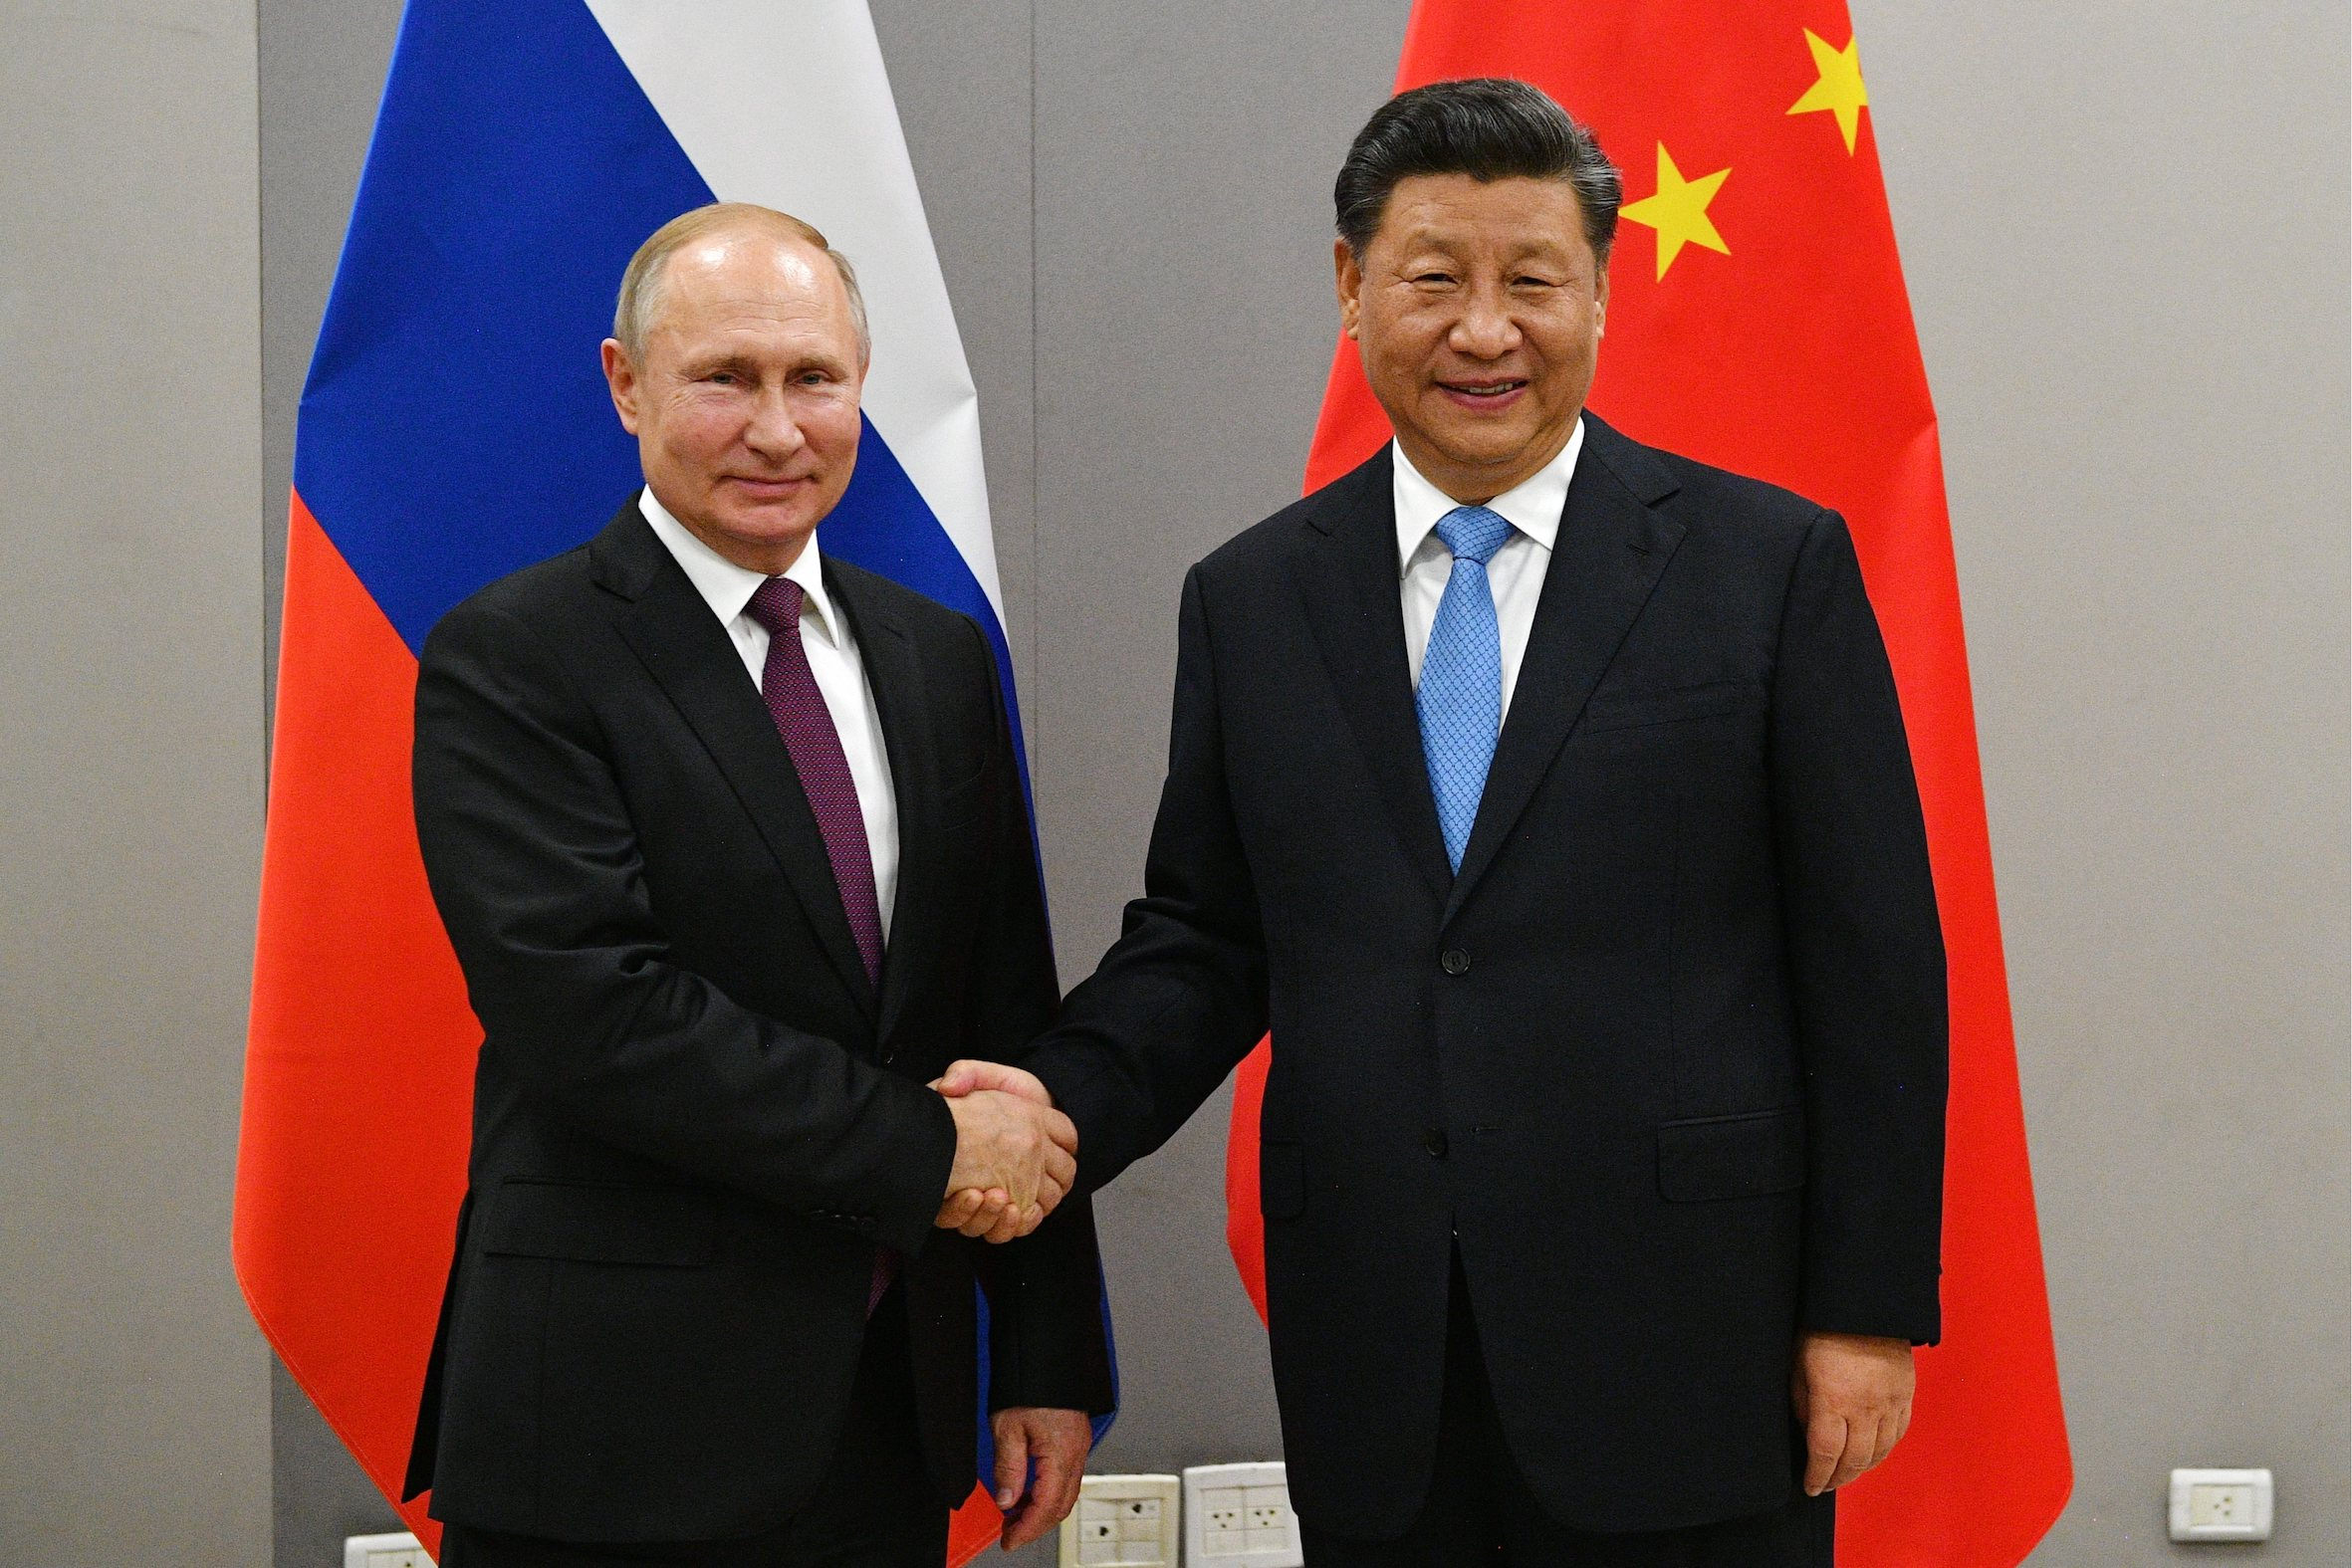 An agreement with Iran and an agreement with Russia: China now shows the West that it has friends of its own